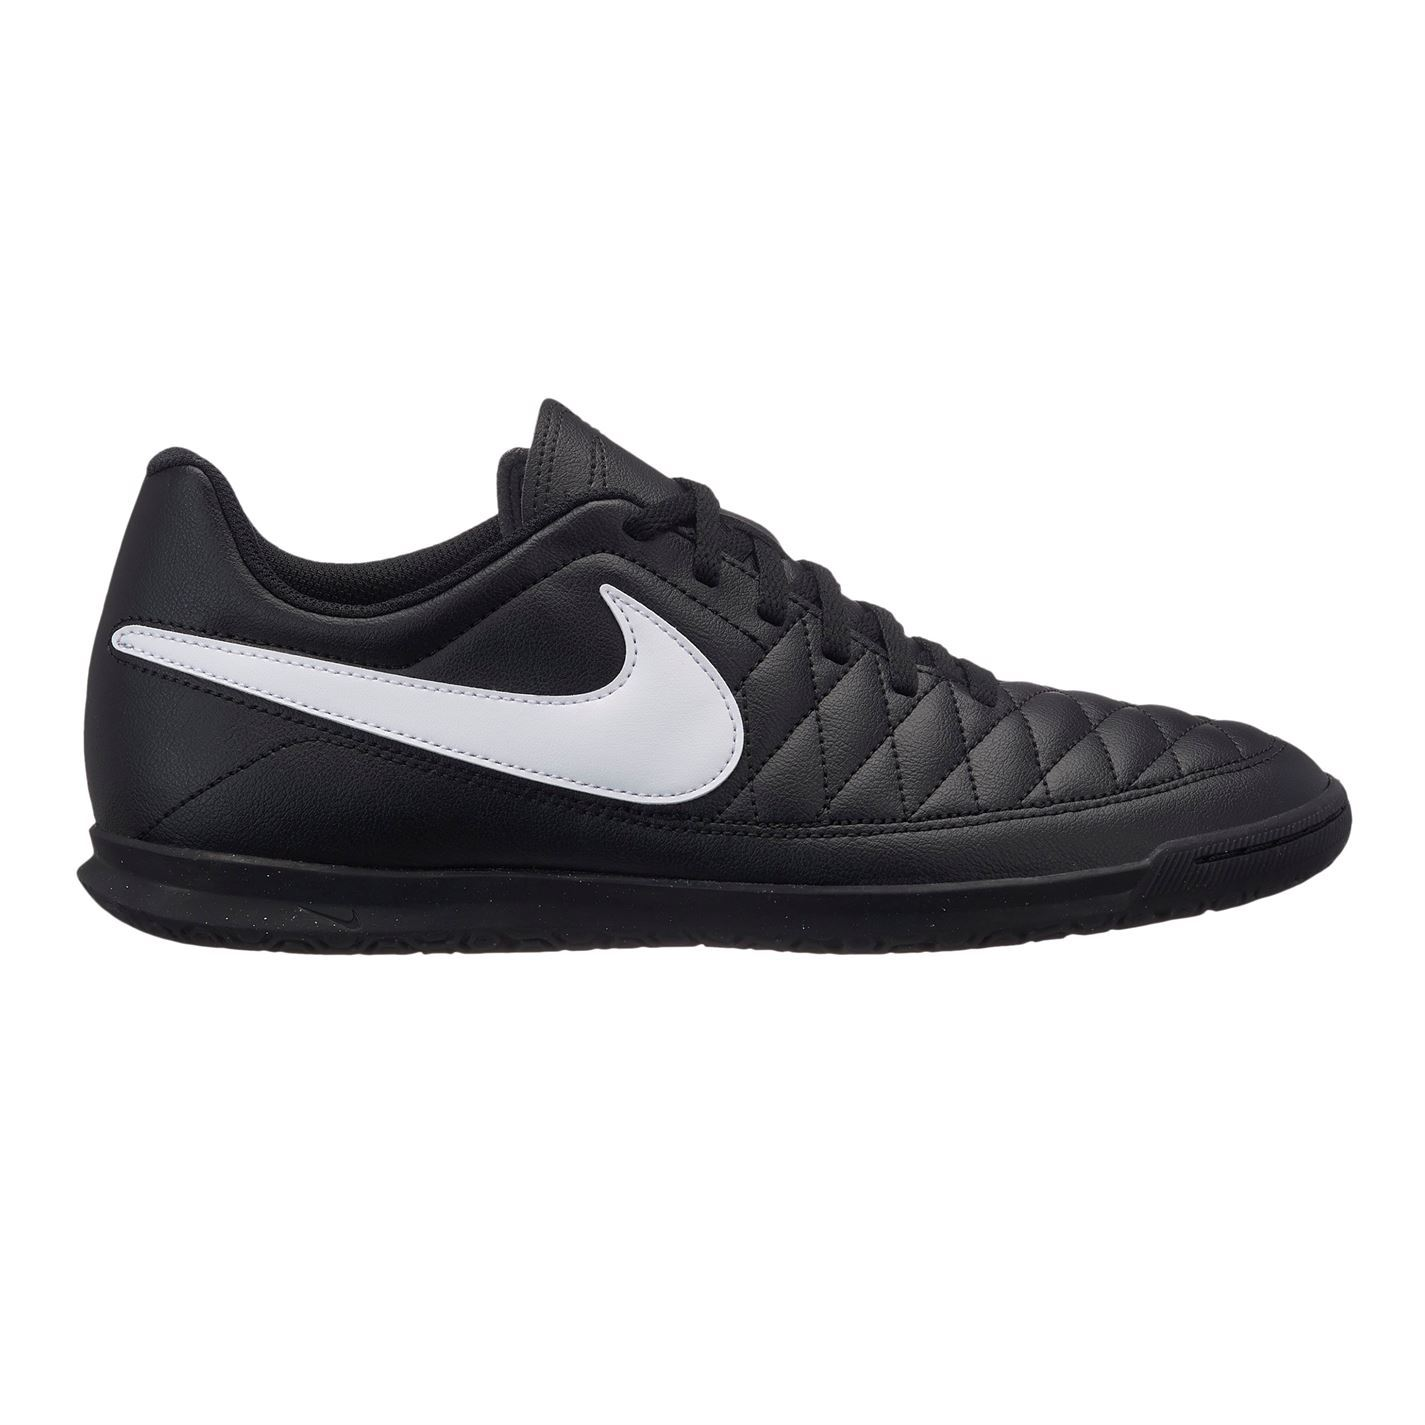 Nike-majestry-Indoor-Football-Baskets-Pour-Homme-Football-Futsal-Chaussures-Baskets-Bottes miniature 19